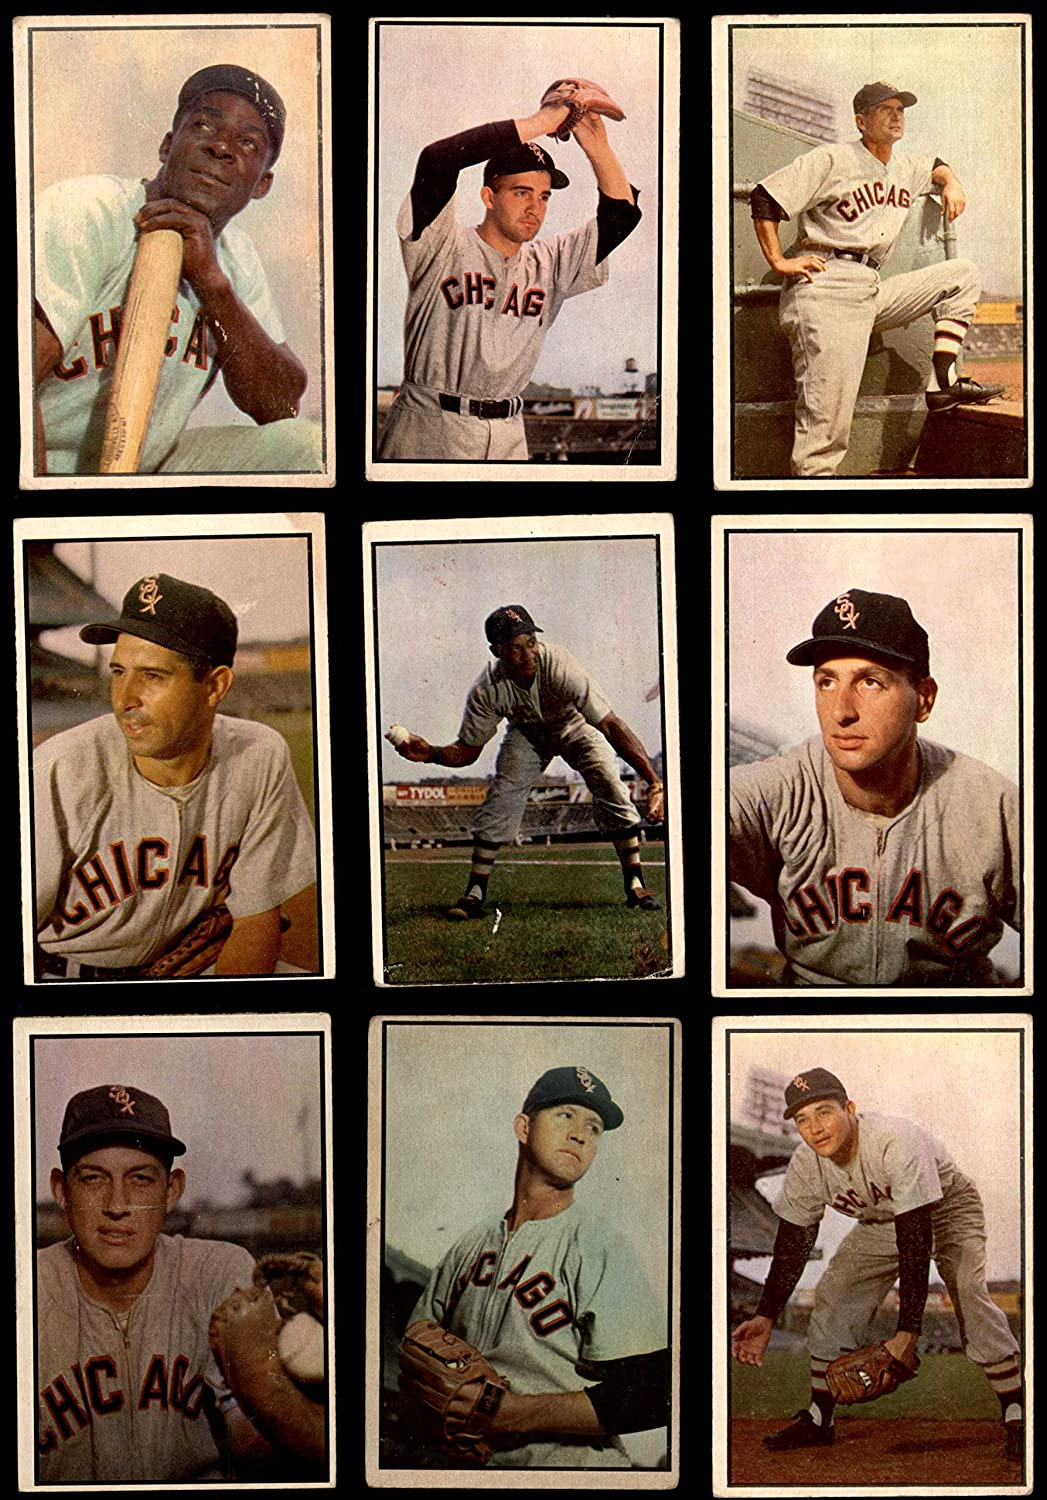 1953 Bowman Chicago White Sox Near Team Set Chicago White Sox (Baseball Set) Dean's Cards 3 - VG White Sox 910VBTvg6NLSL1500_